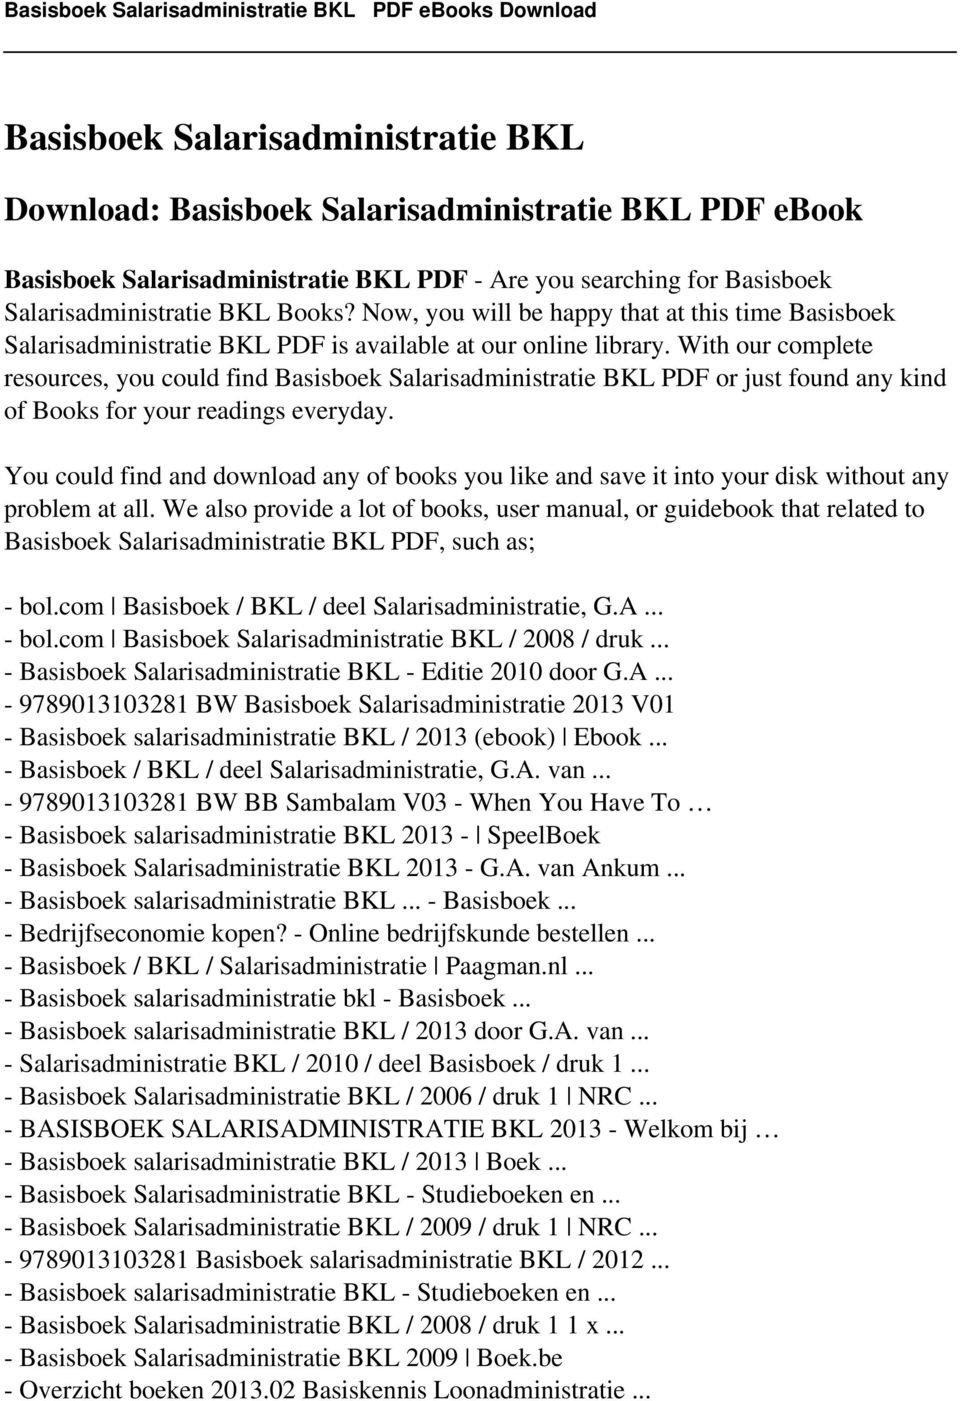 With our complete resources, you could find Basisboek Salarisadministratie BKL PDF or just found any kind of Books for your readings everyday.